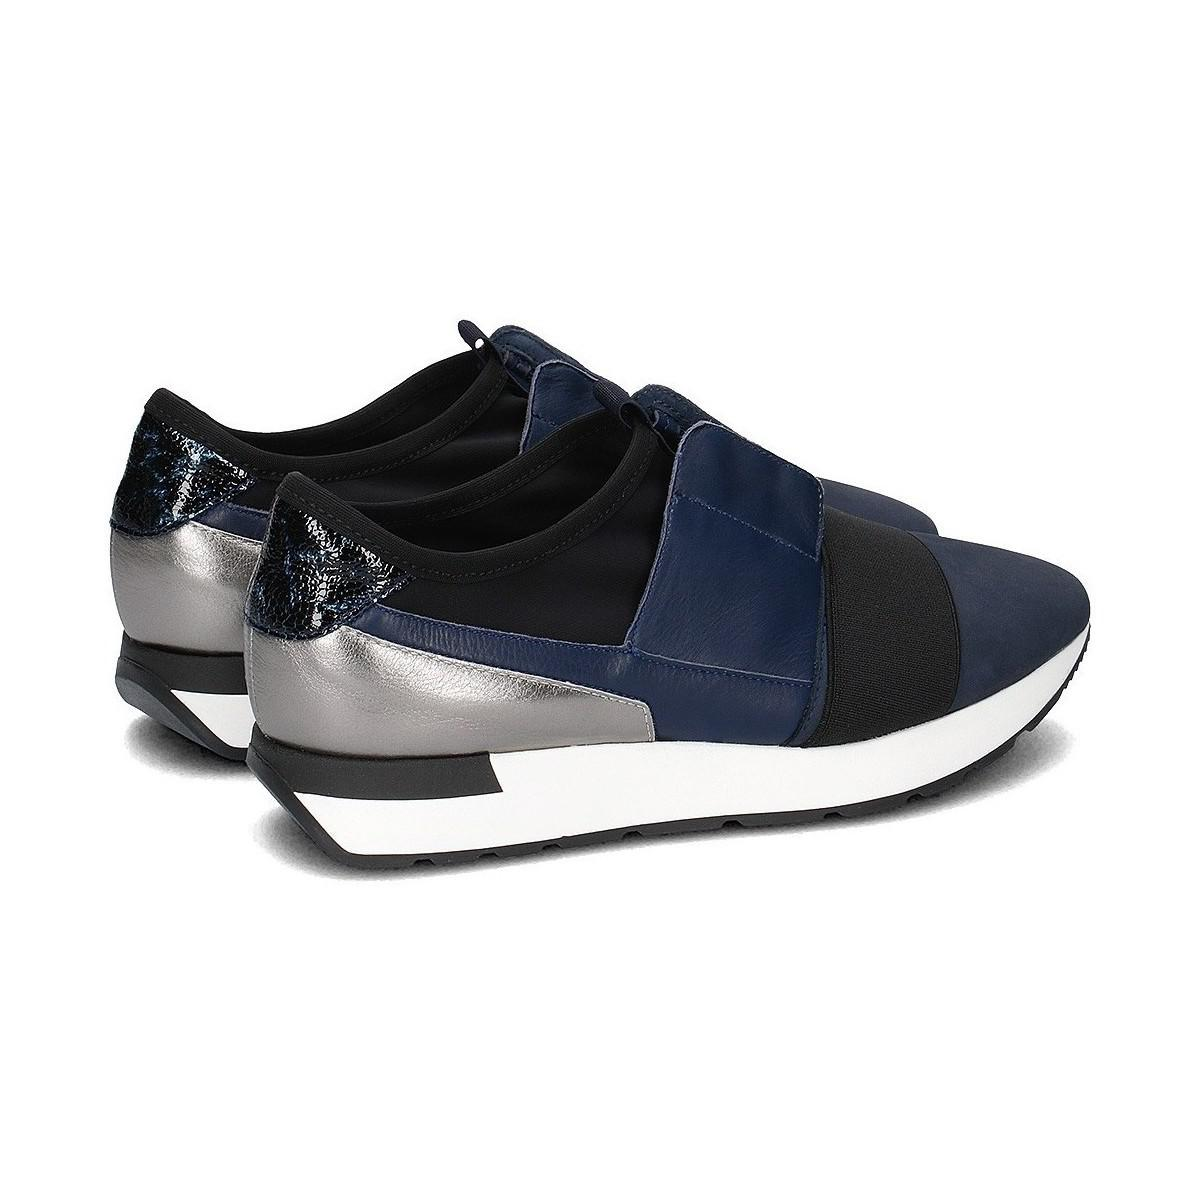 Top Quality Sale Online Free Shipping Amazon Gino Rossi Seiko women's Shoes (Trainers) in 2018 Cheap Sale Discount Largest Supplier nCJ8l